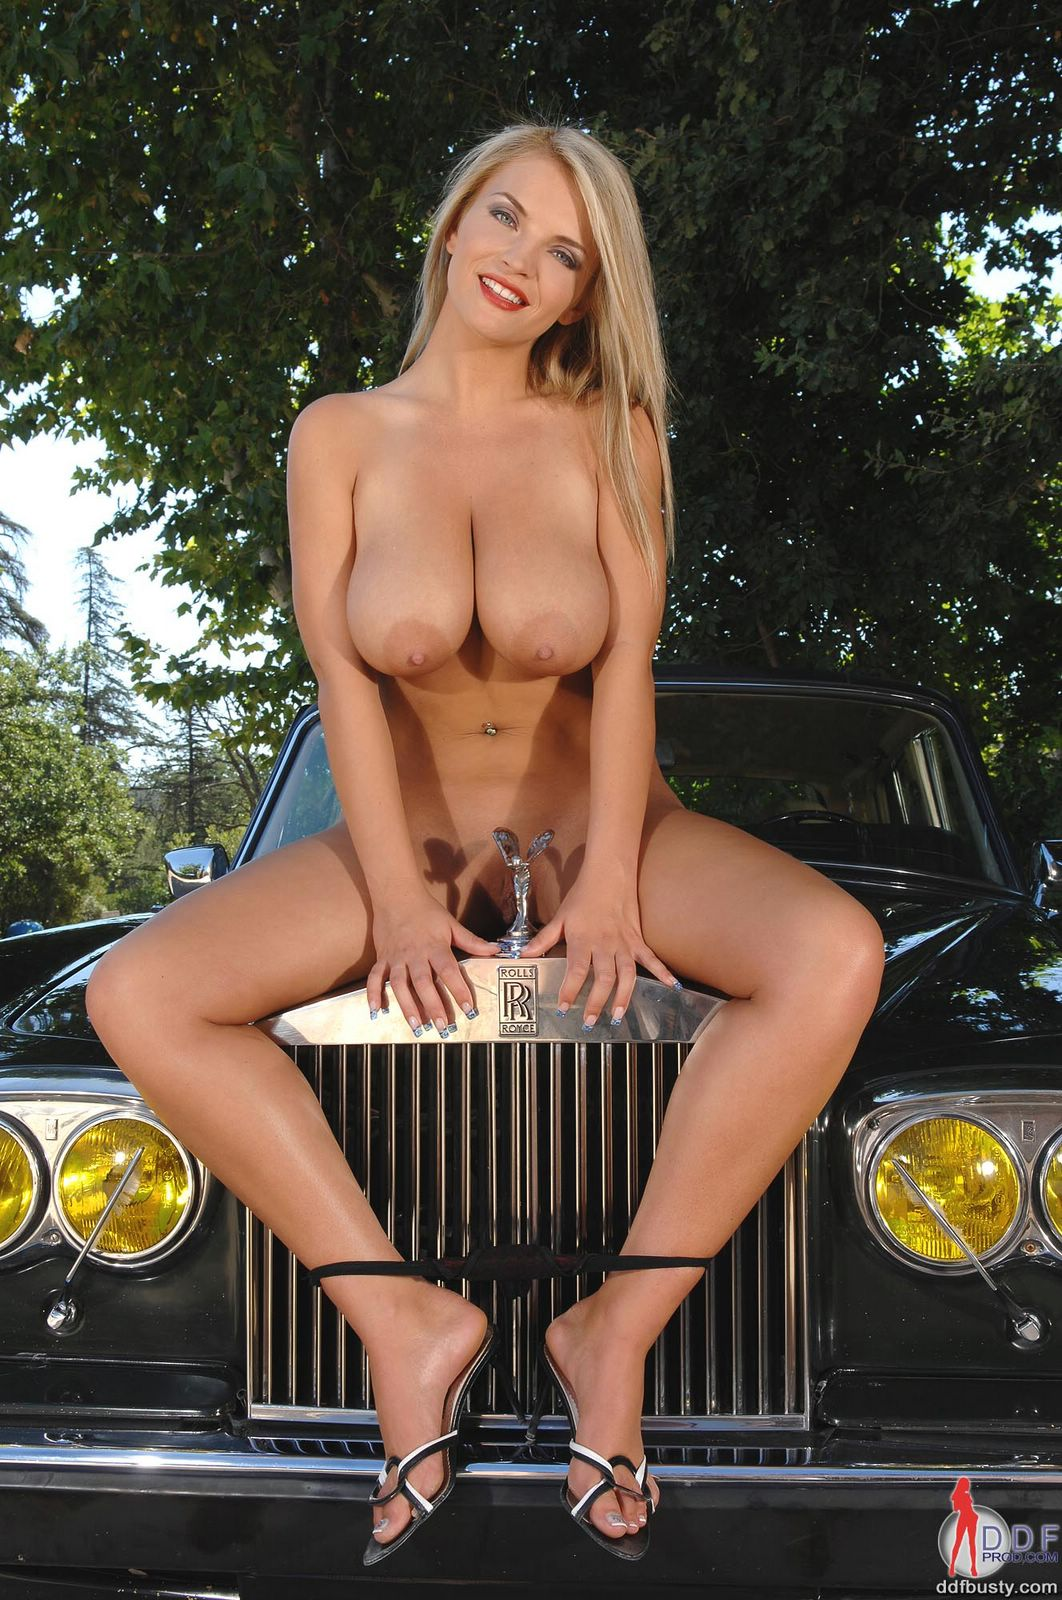 Masturbating in the car while driving 8